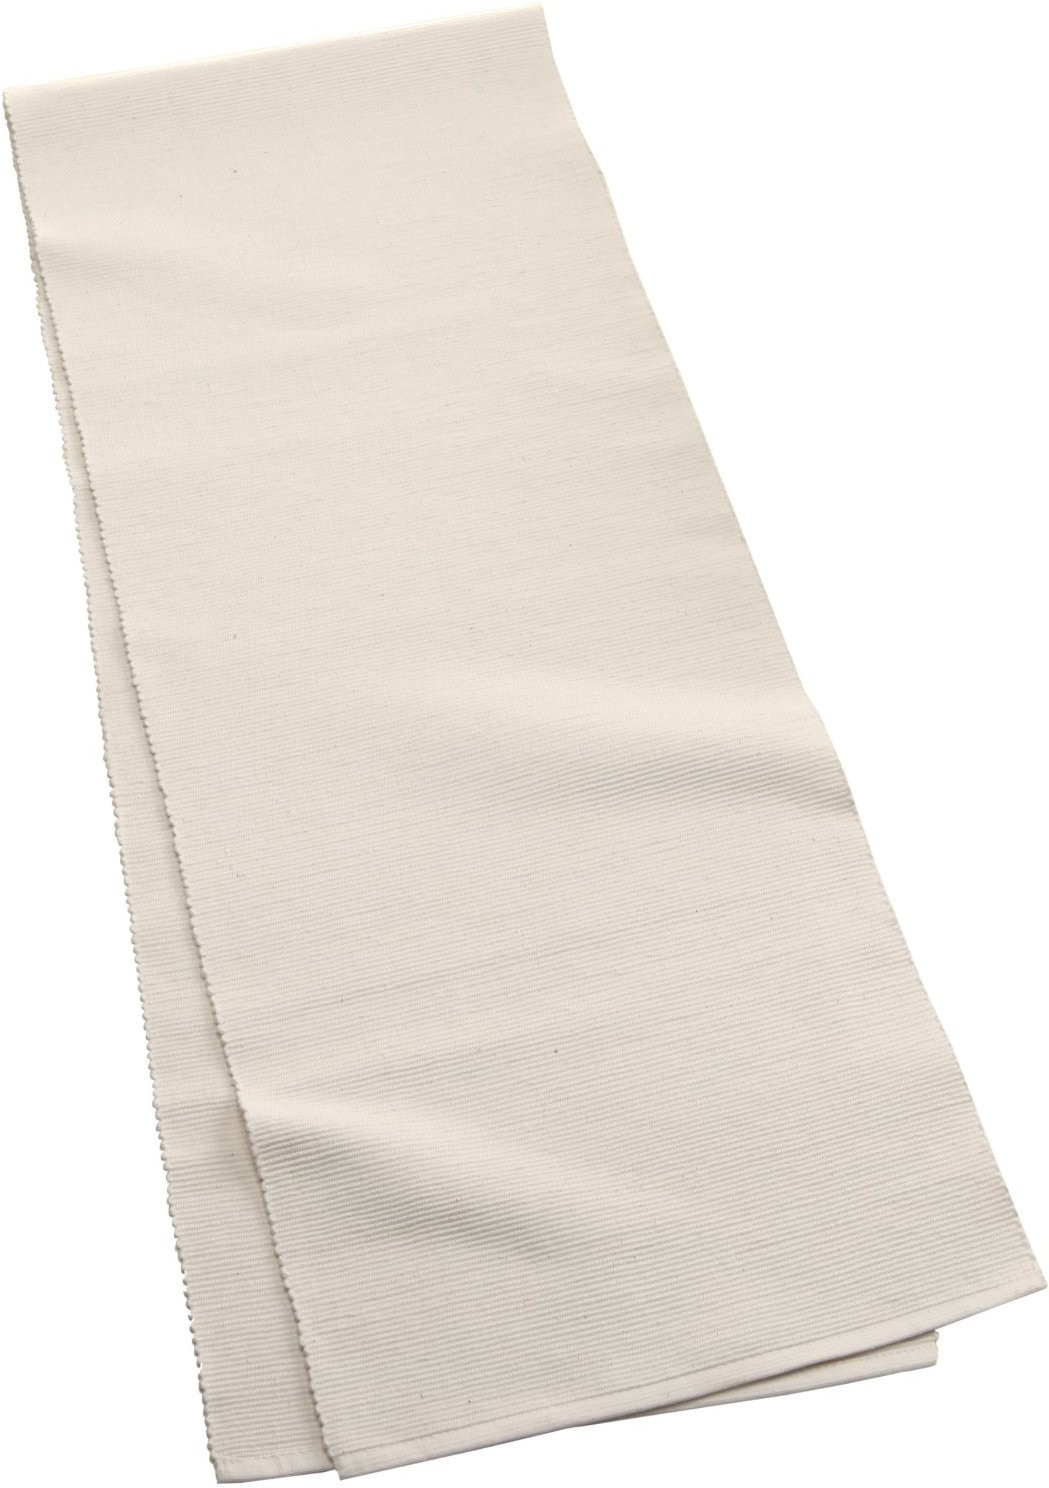 Dhrohar White 182 cm Table Runner(Cotton)